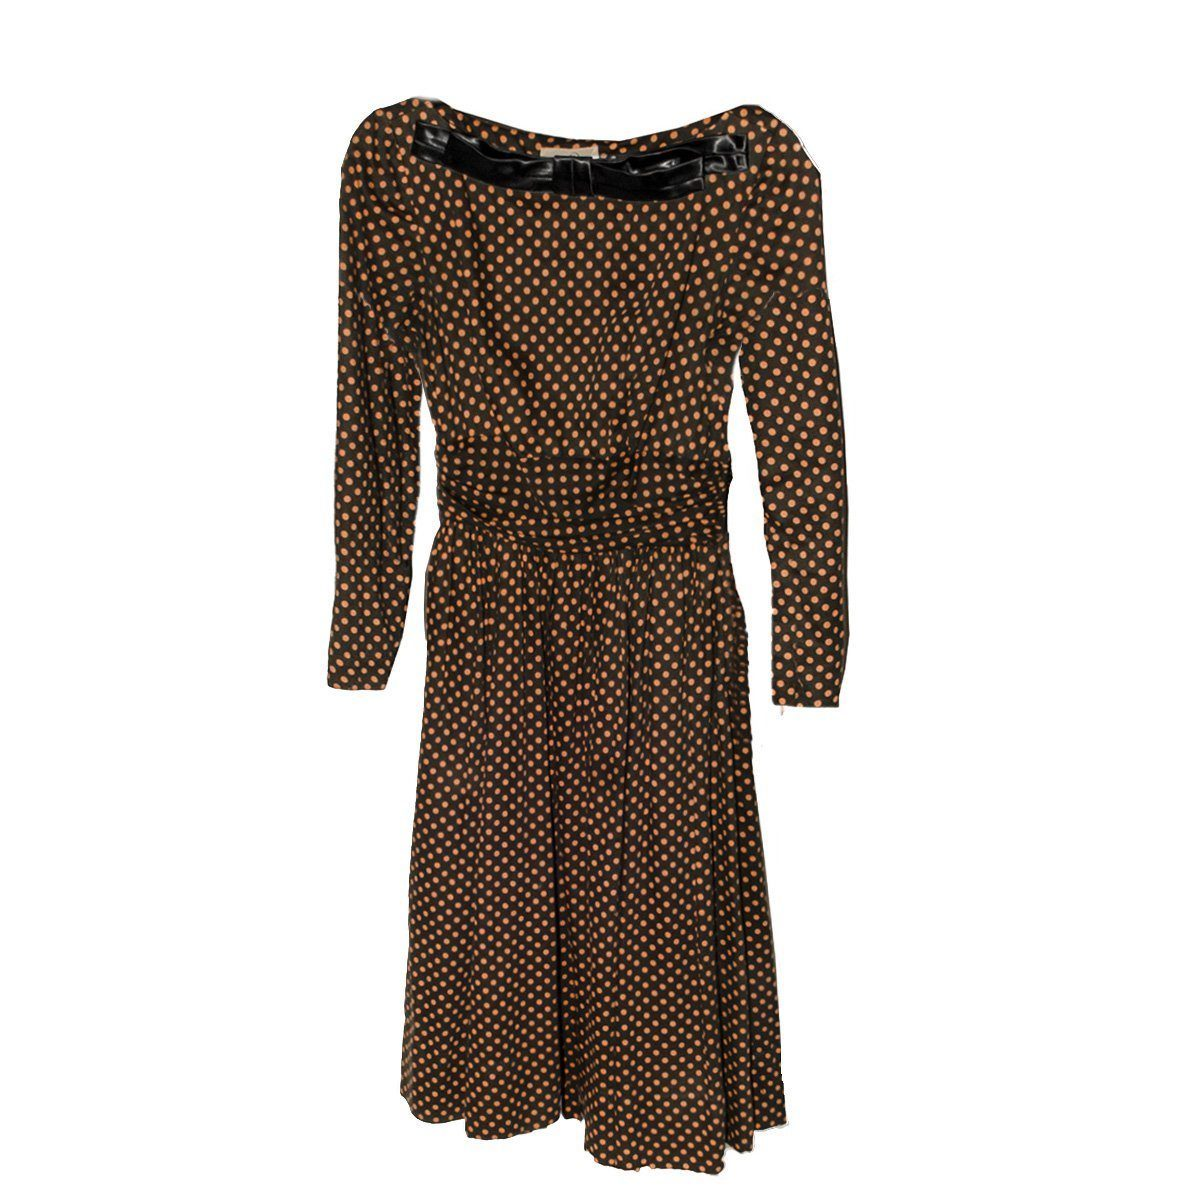 1950s Jean Lang Original Wool Jersey Dress, Orange & Brown Polka Dot,  Size Small